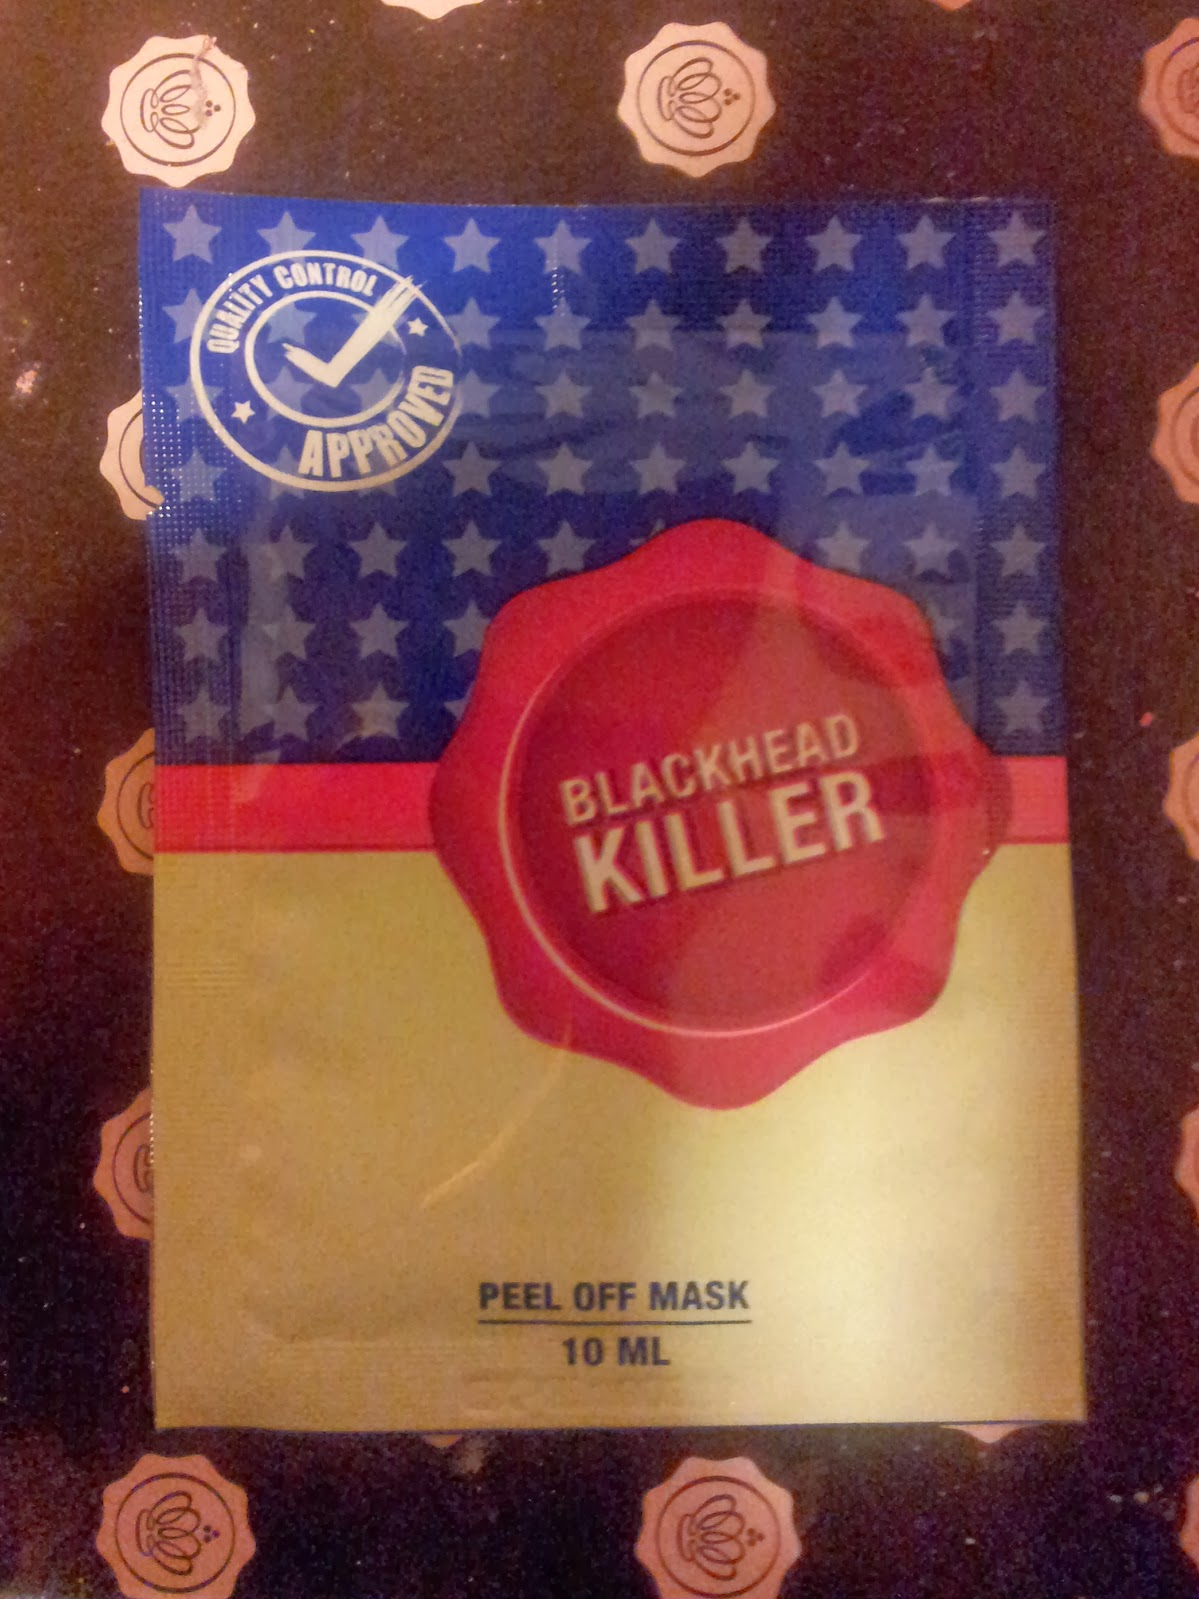 , StyleLux Blackhead Killer Peel Off Mask Review